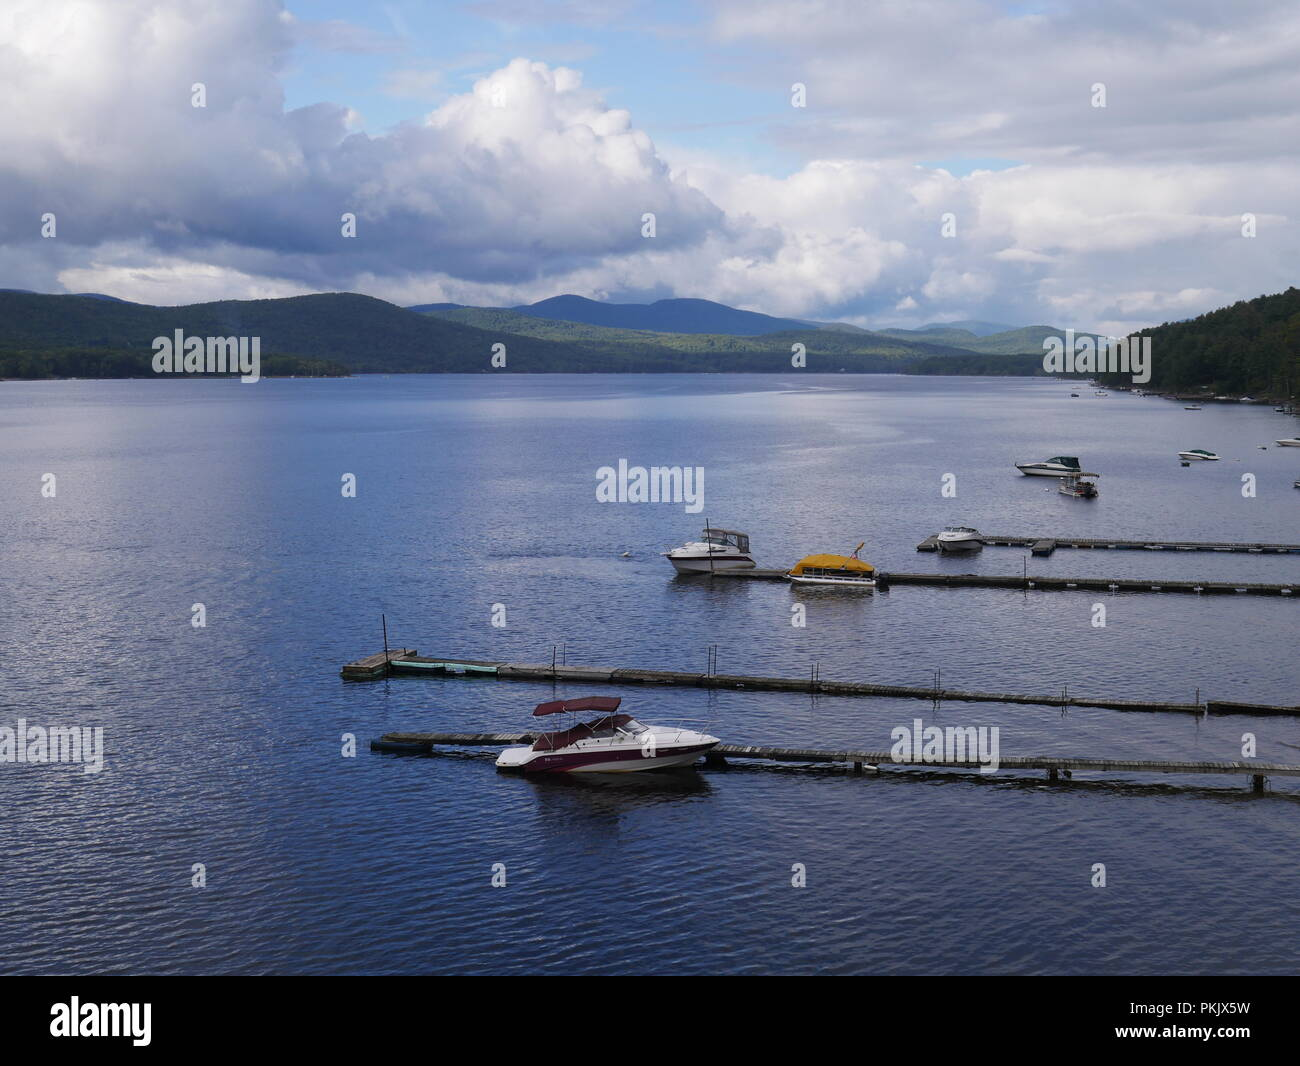 Boats docked on a lake in the Adirondack mountains of New York state - Stock Image